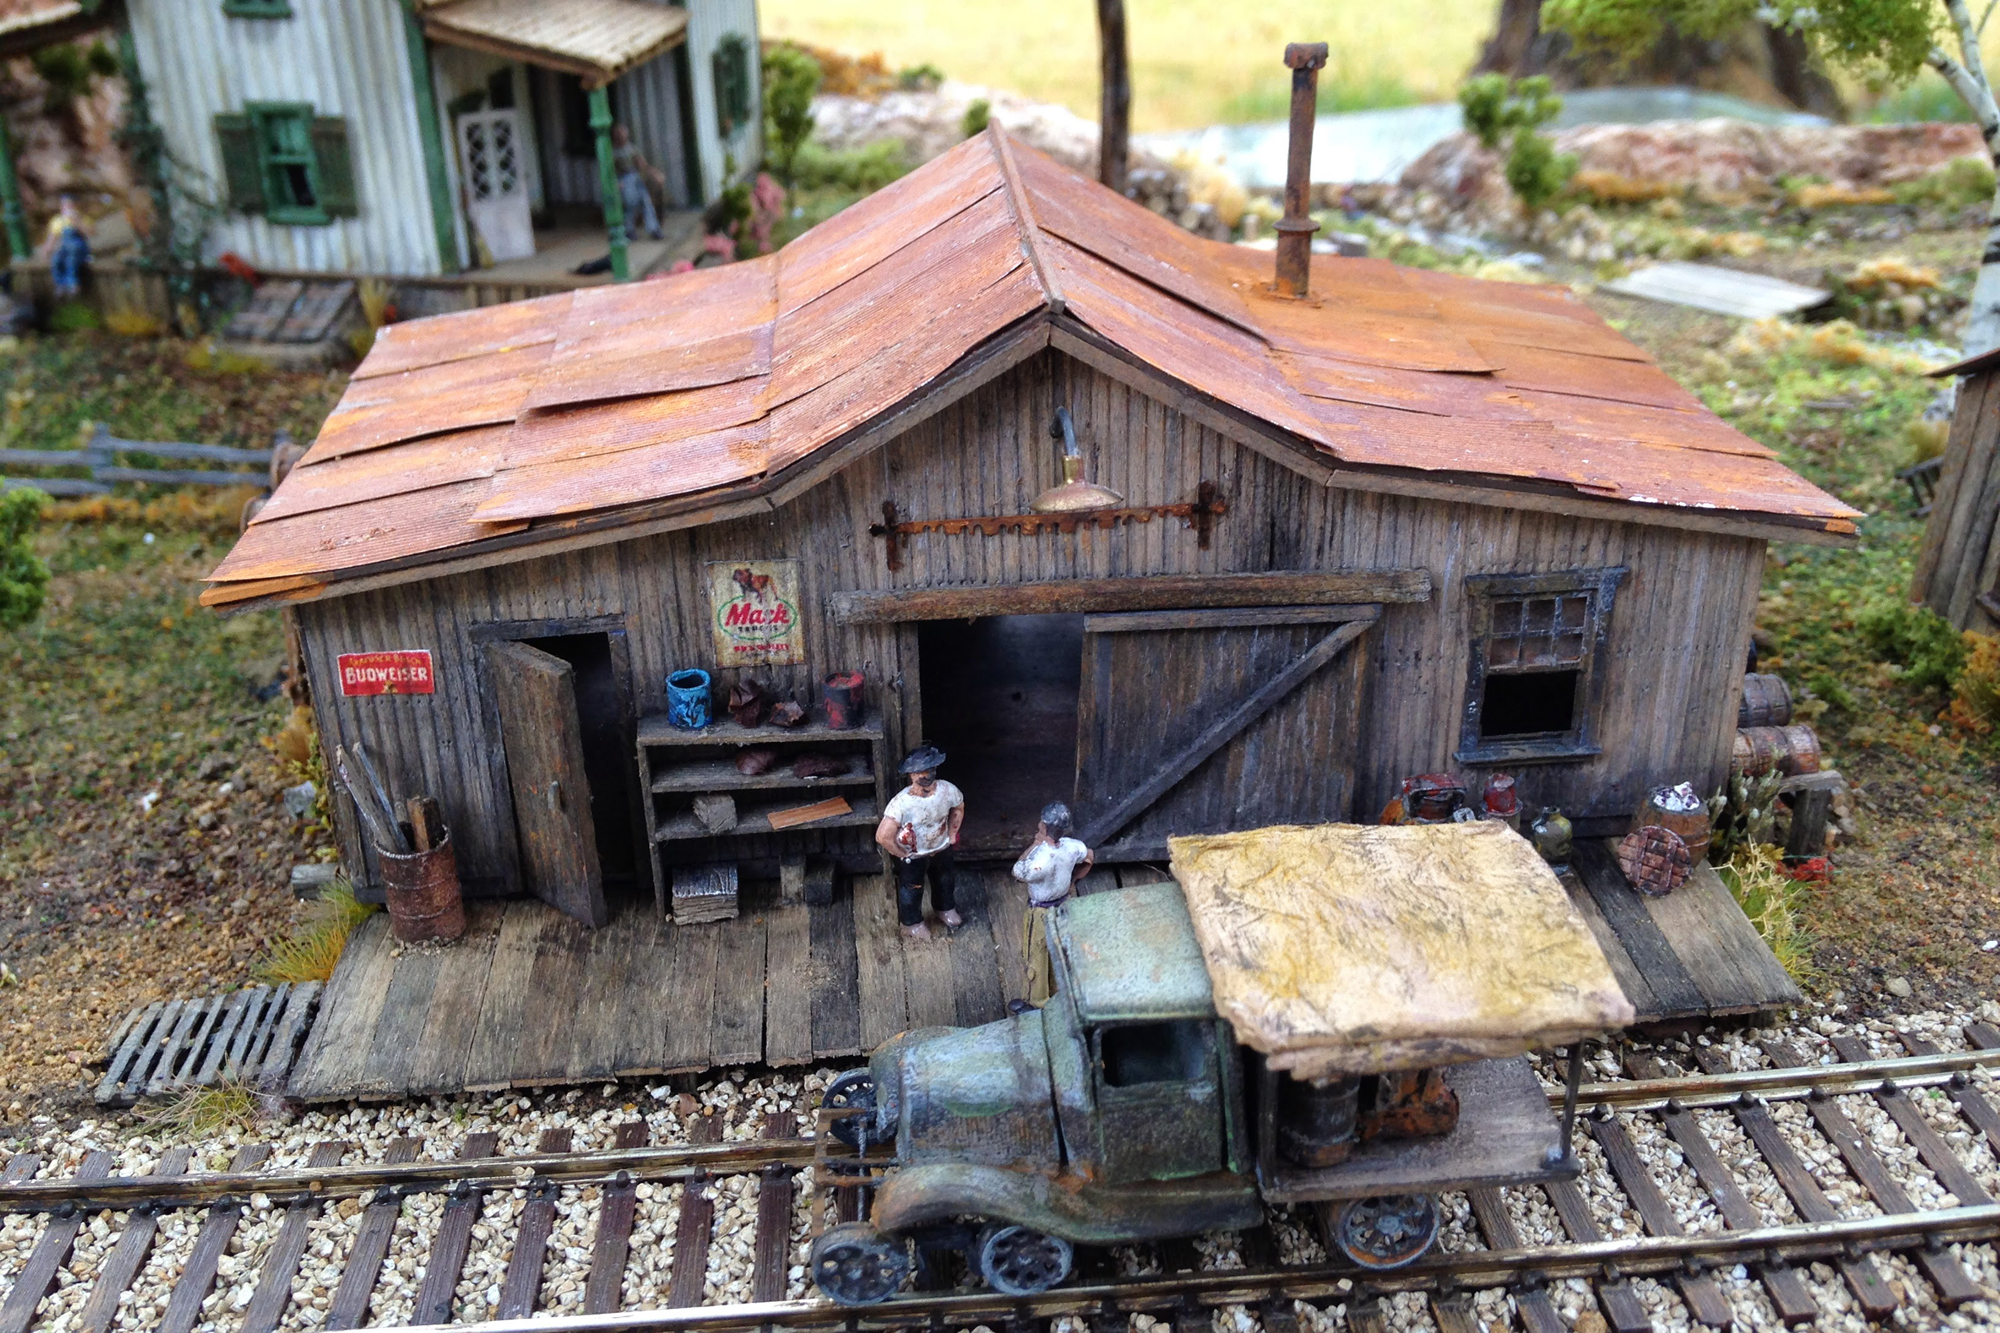 Modeling diorama by Trudy Seeley, San Diego Division member.